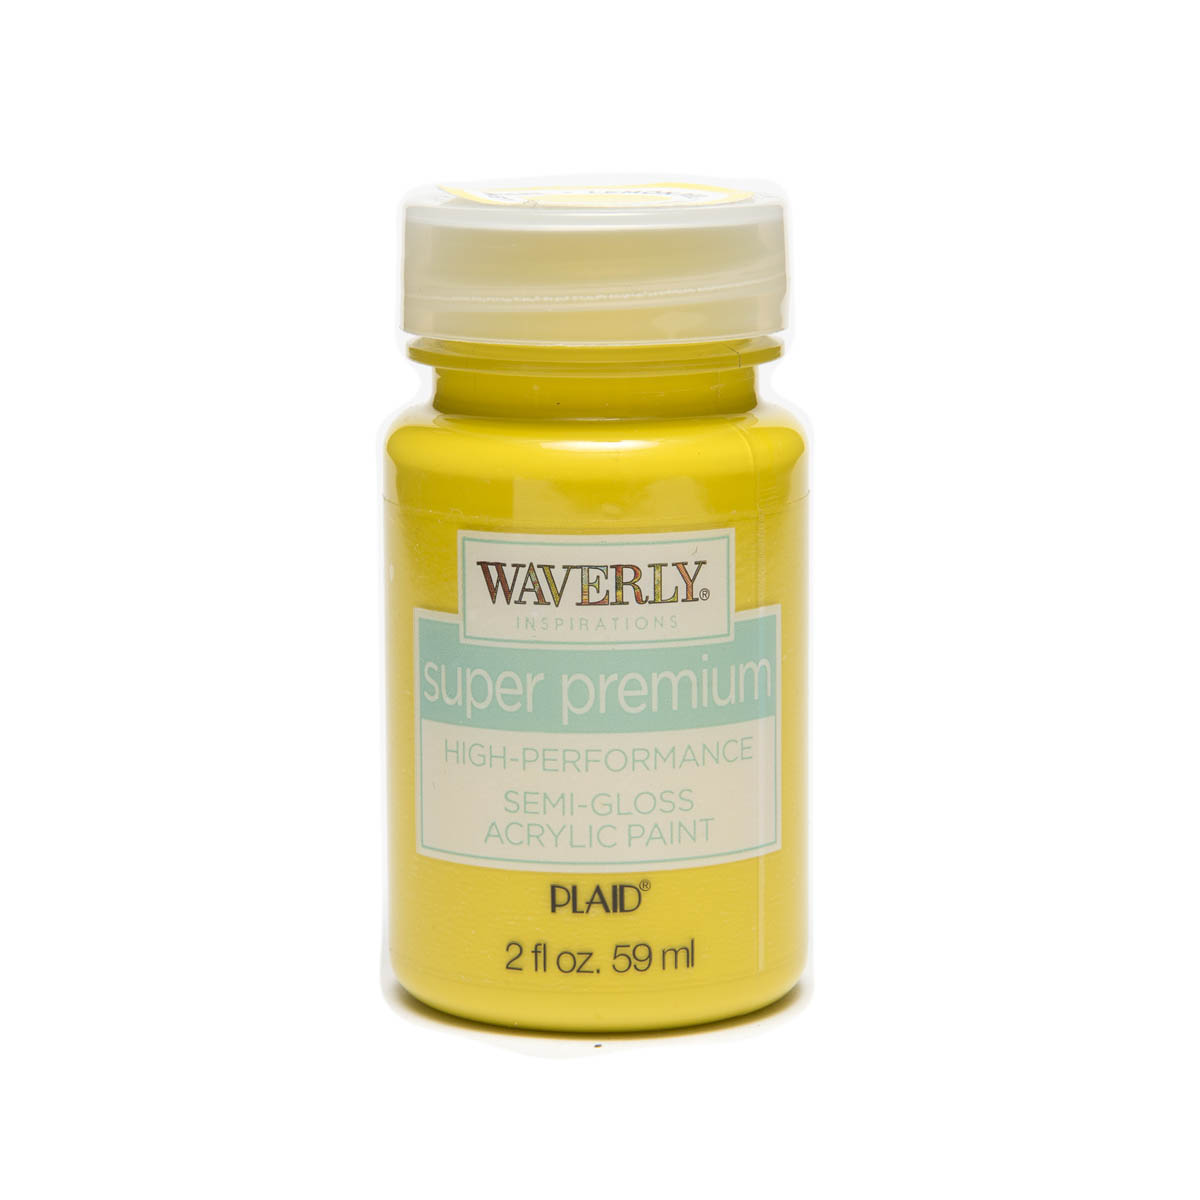 Waverly ® Inspirations Super Premium Semi-Gloss Acrylic Paint - Lemon Peel, 2 oz. - 60618E